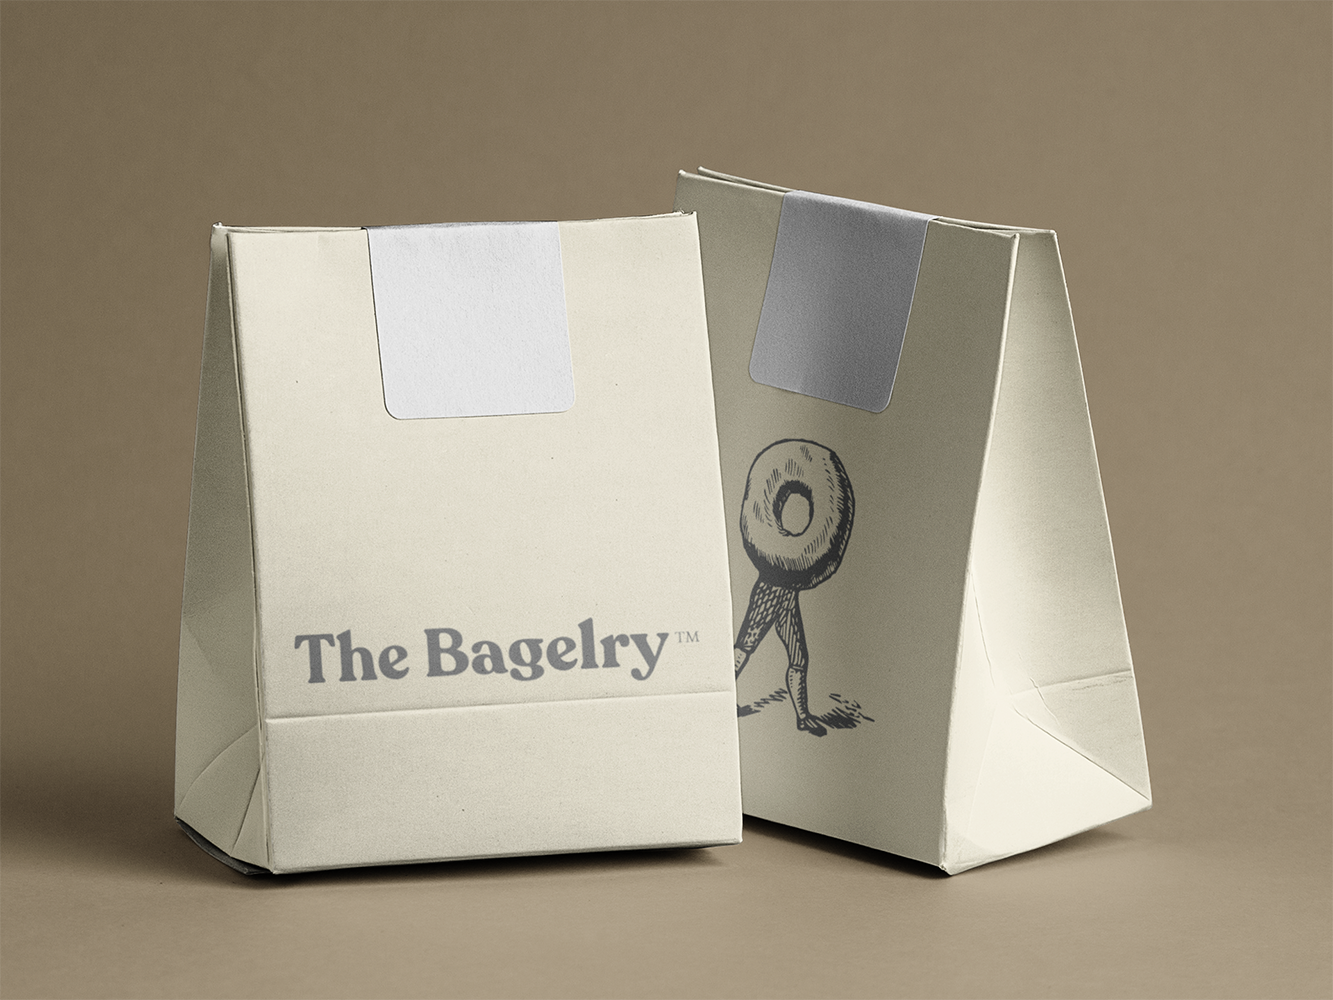 paper-bag-mockup-featuring-two-paper-bags-over-a-flat-surface-a6771.png